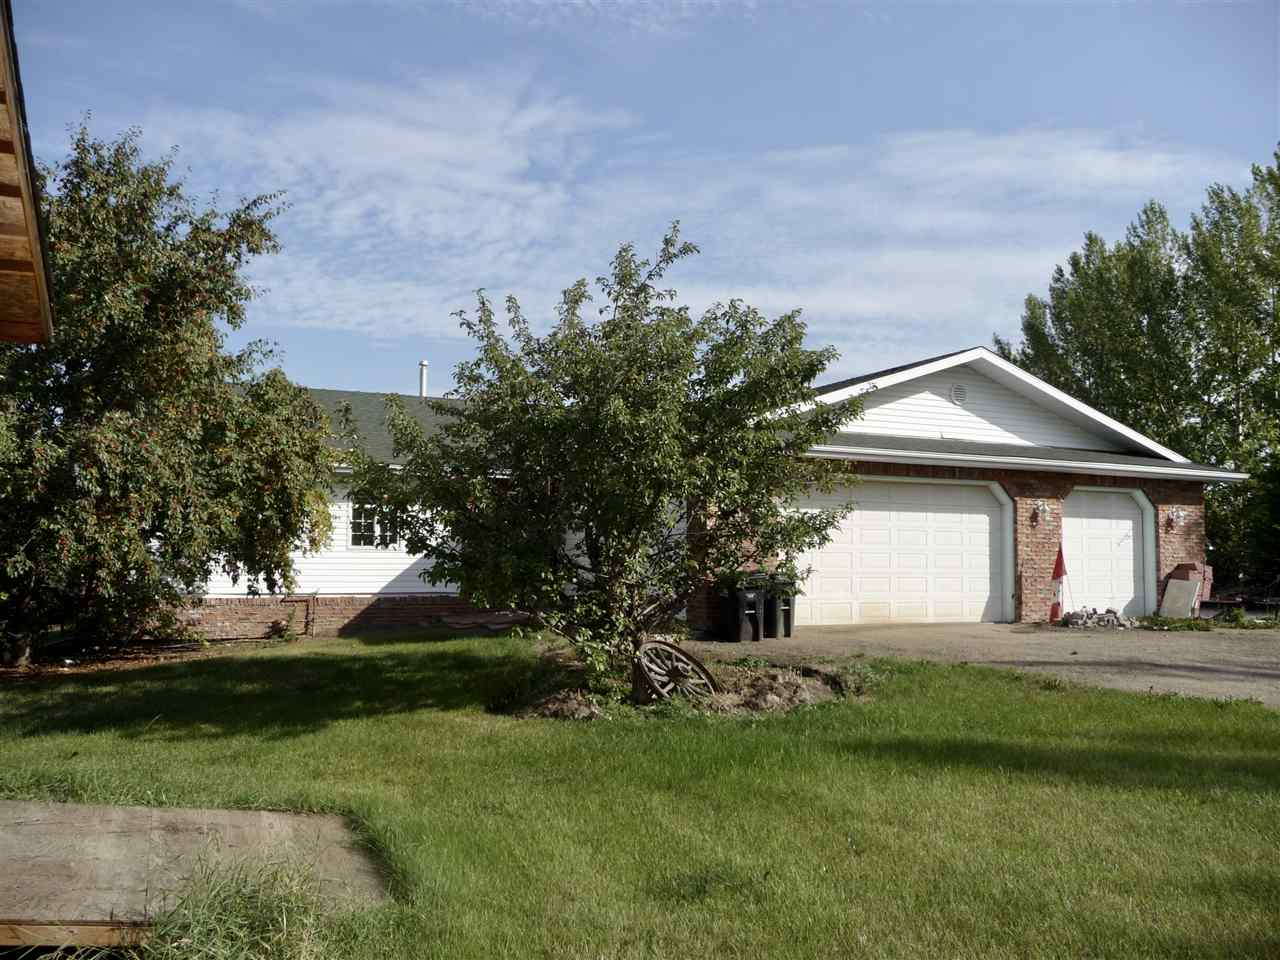 385 52471 RGE RD 223, 3 bed, 2 bath, at $449,000